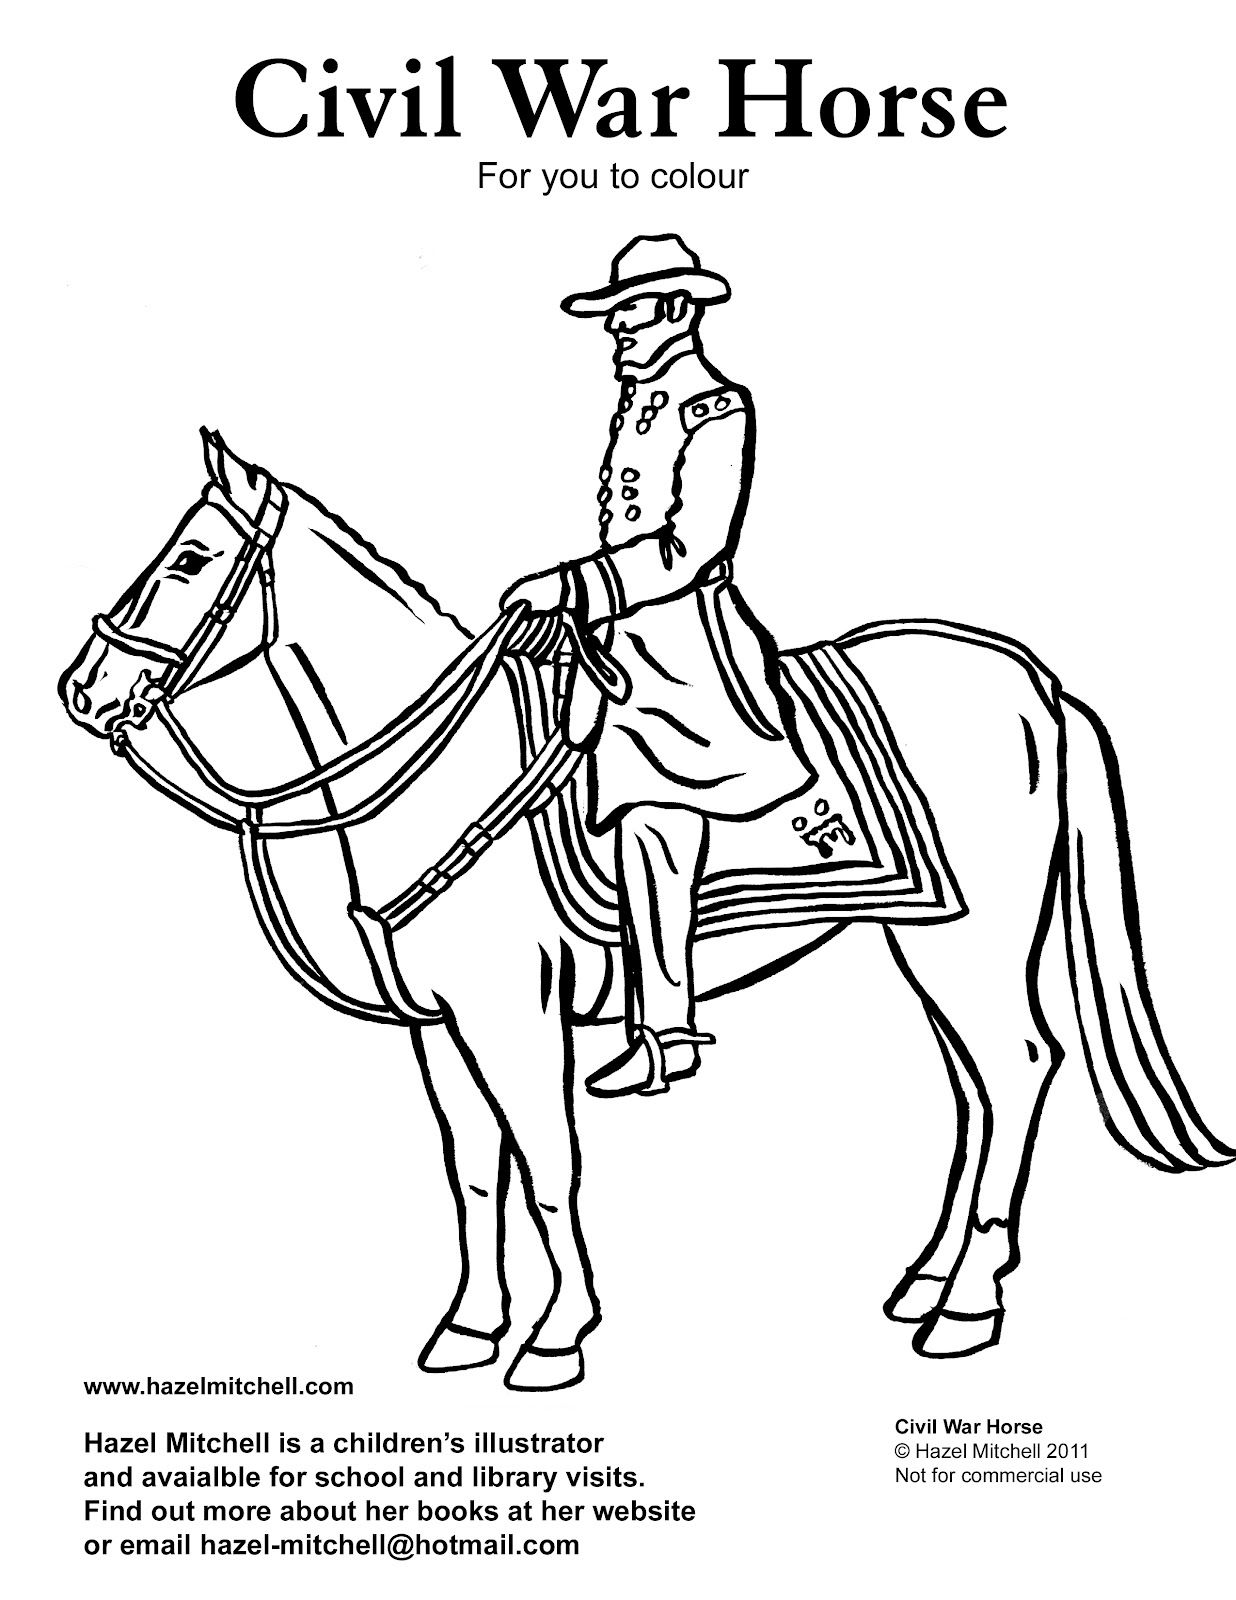 Civil War Coloring Pages Forget To Follow My Blog So You Will Receive The Latest Kid S Page Animal Coloring Pages War Horse Coloring Pages [ 1600 x 1236 Pixel ]